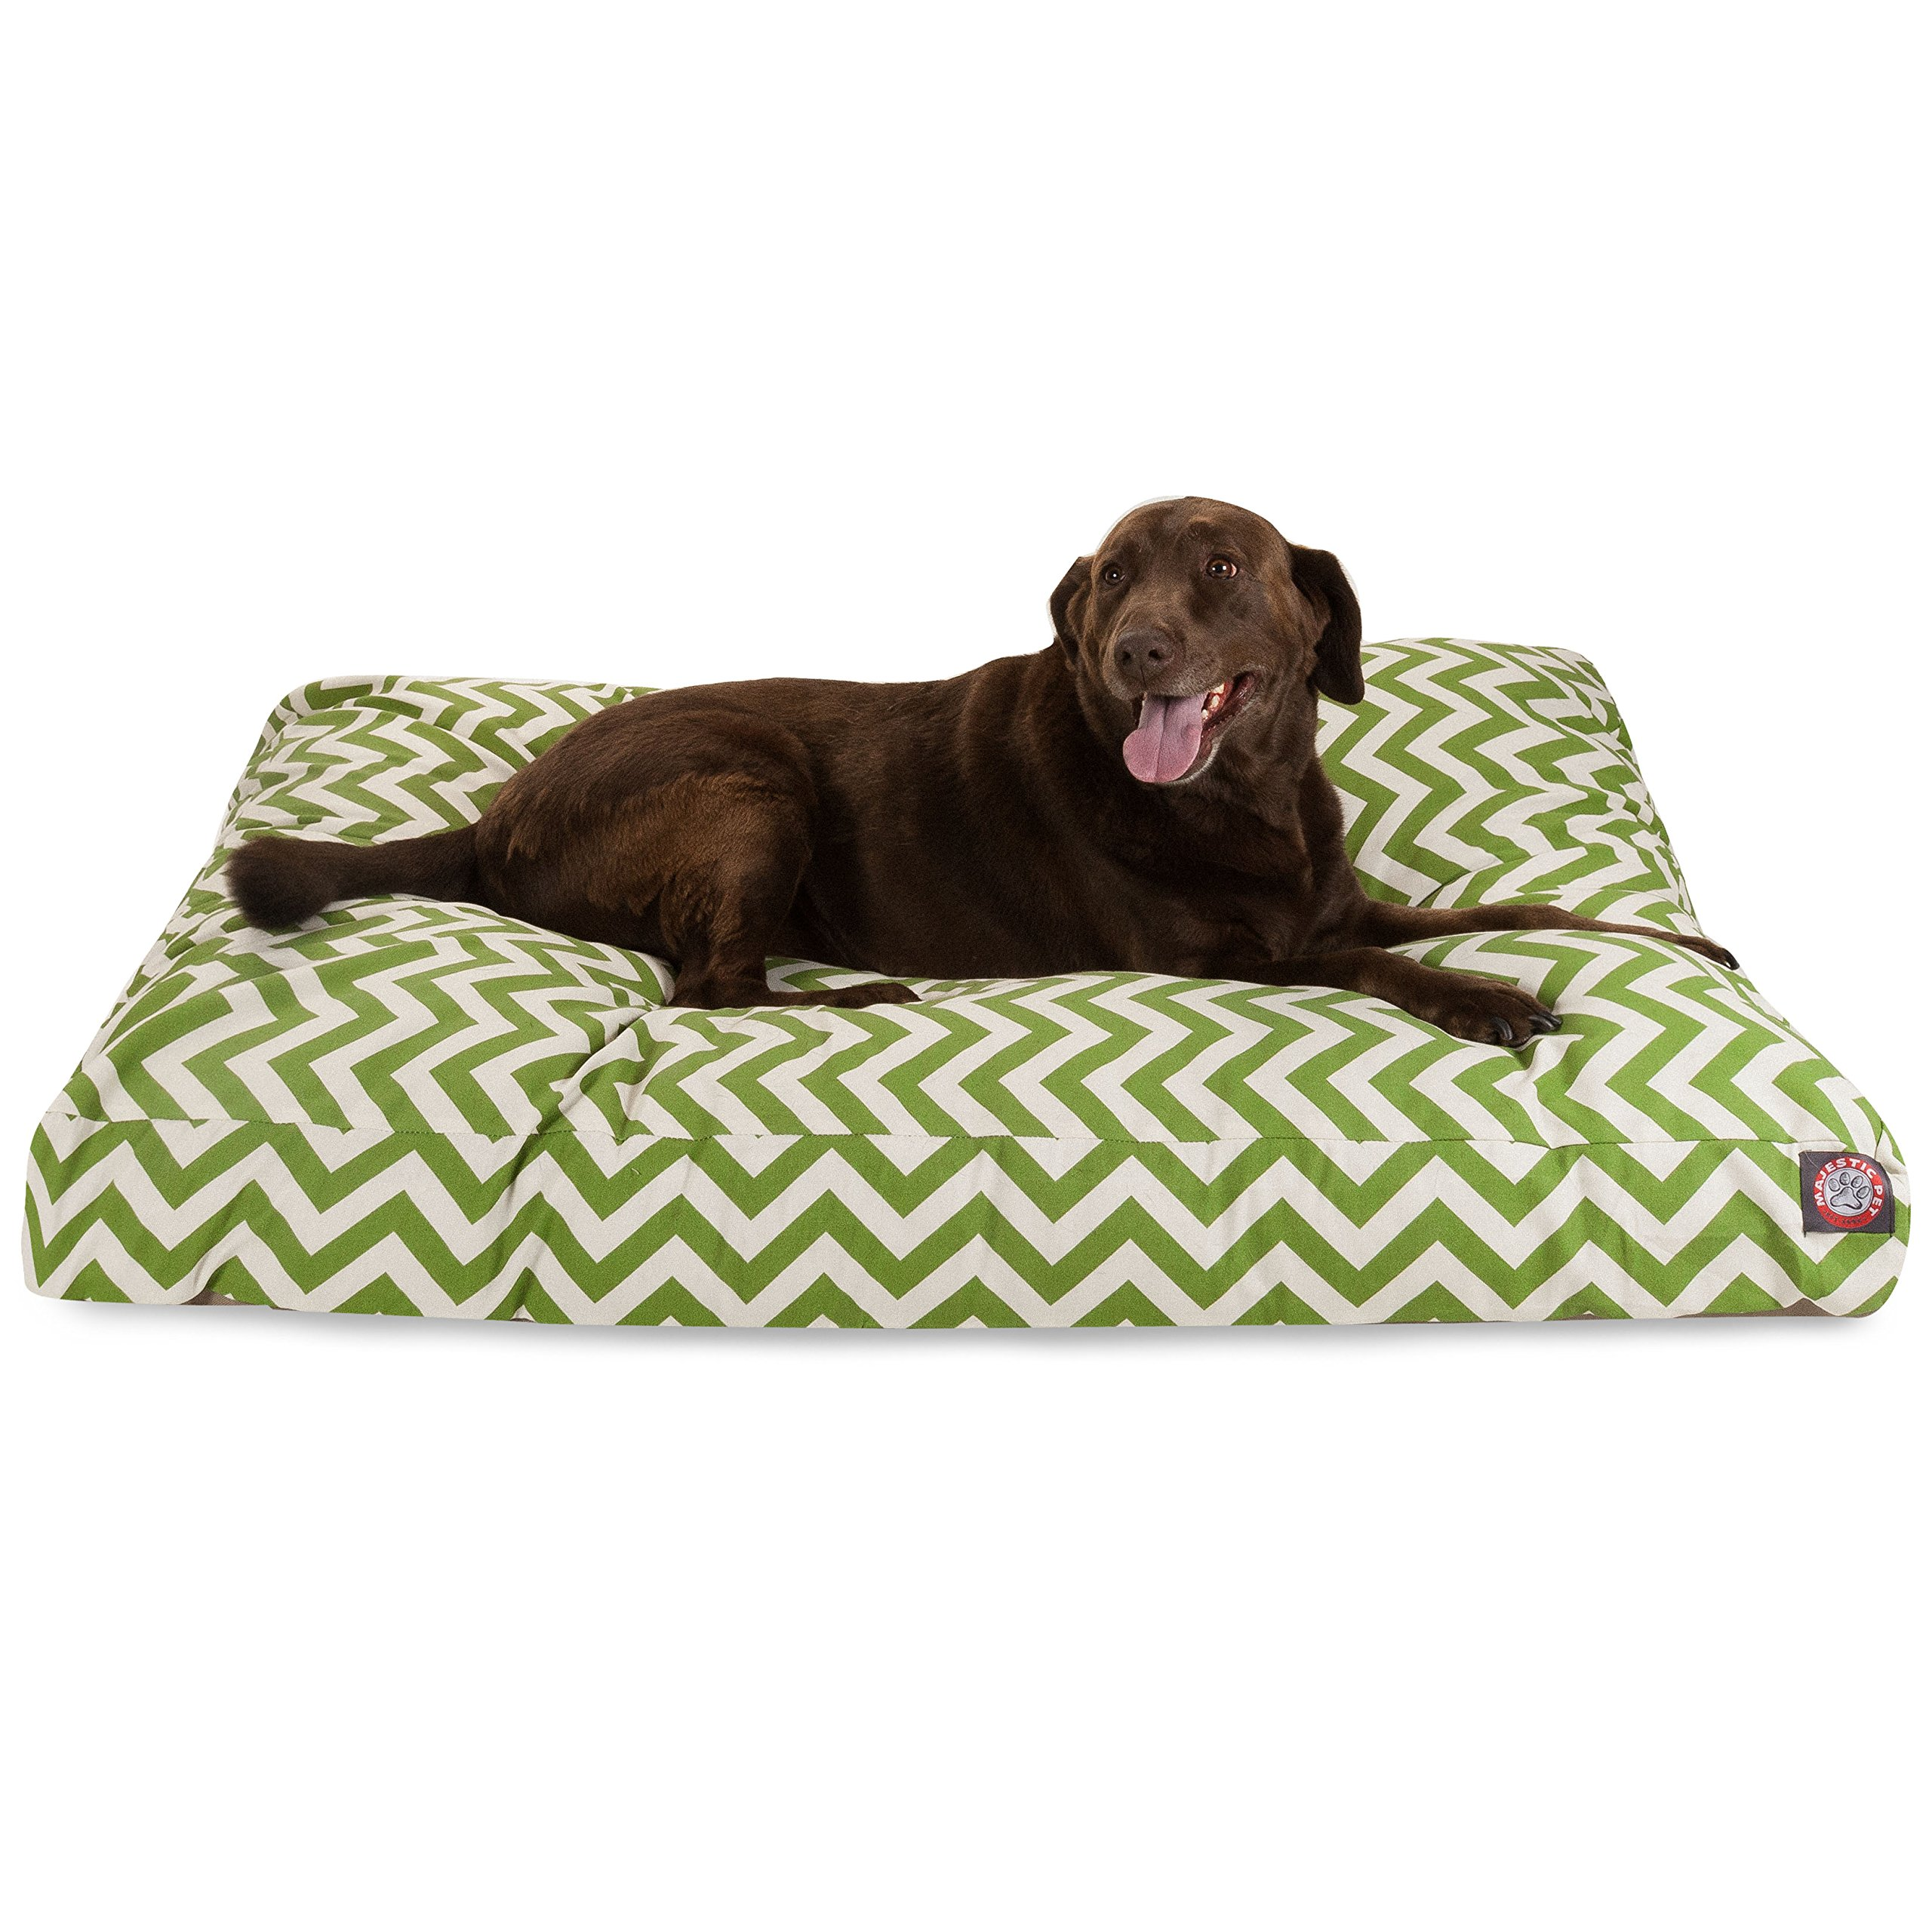 Sage Chevron Extra Large Rectangle Indoor Outdoor Pet Dog Bed With Removable Washable Cover By Majestic Pet Products